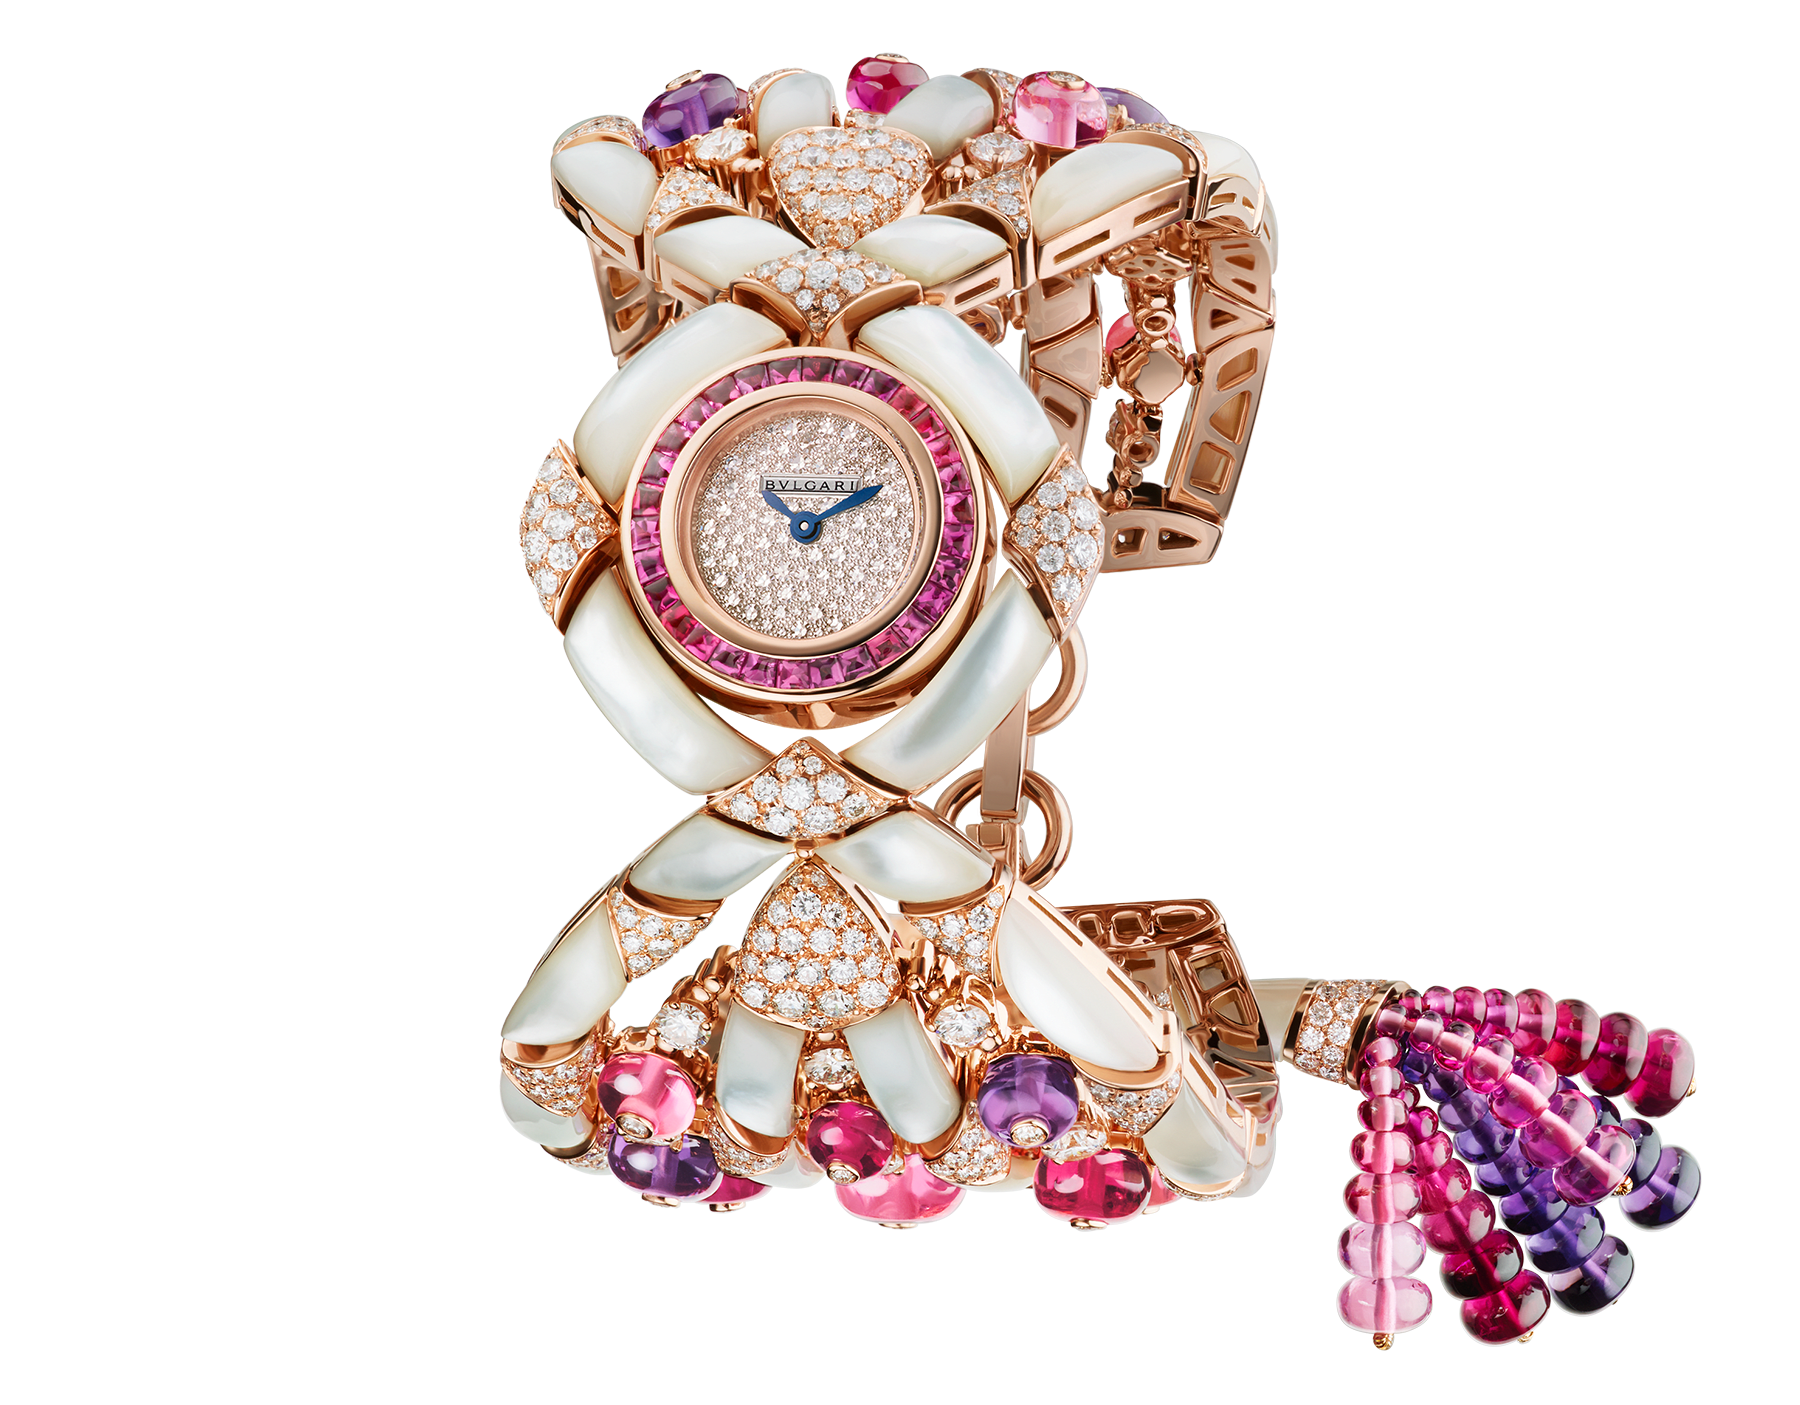 Gemma watch with 18 kt rose gold case set with buff-cut tourmalines, brilliant-cut diamonds and white mother-of-pearl elements, snow pavé dial, 18 kt rose gold bracelet set with tourmaline, amethyst and rubellite beads, brilliant-cut diamonds and white mother-of-pearl elements 102241 image 1